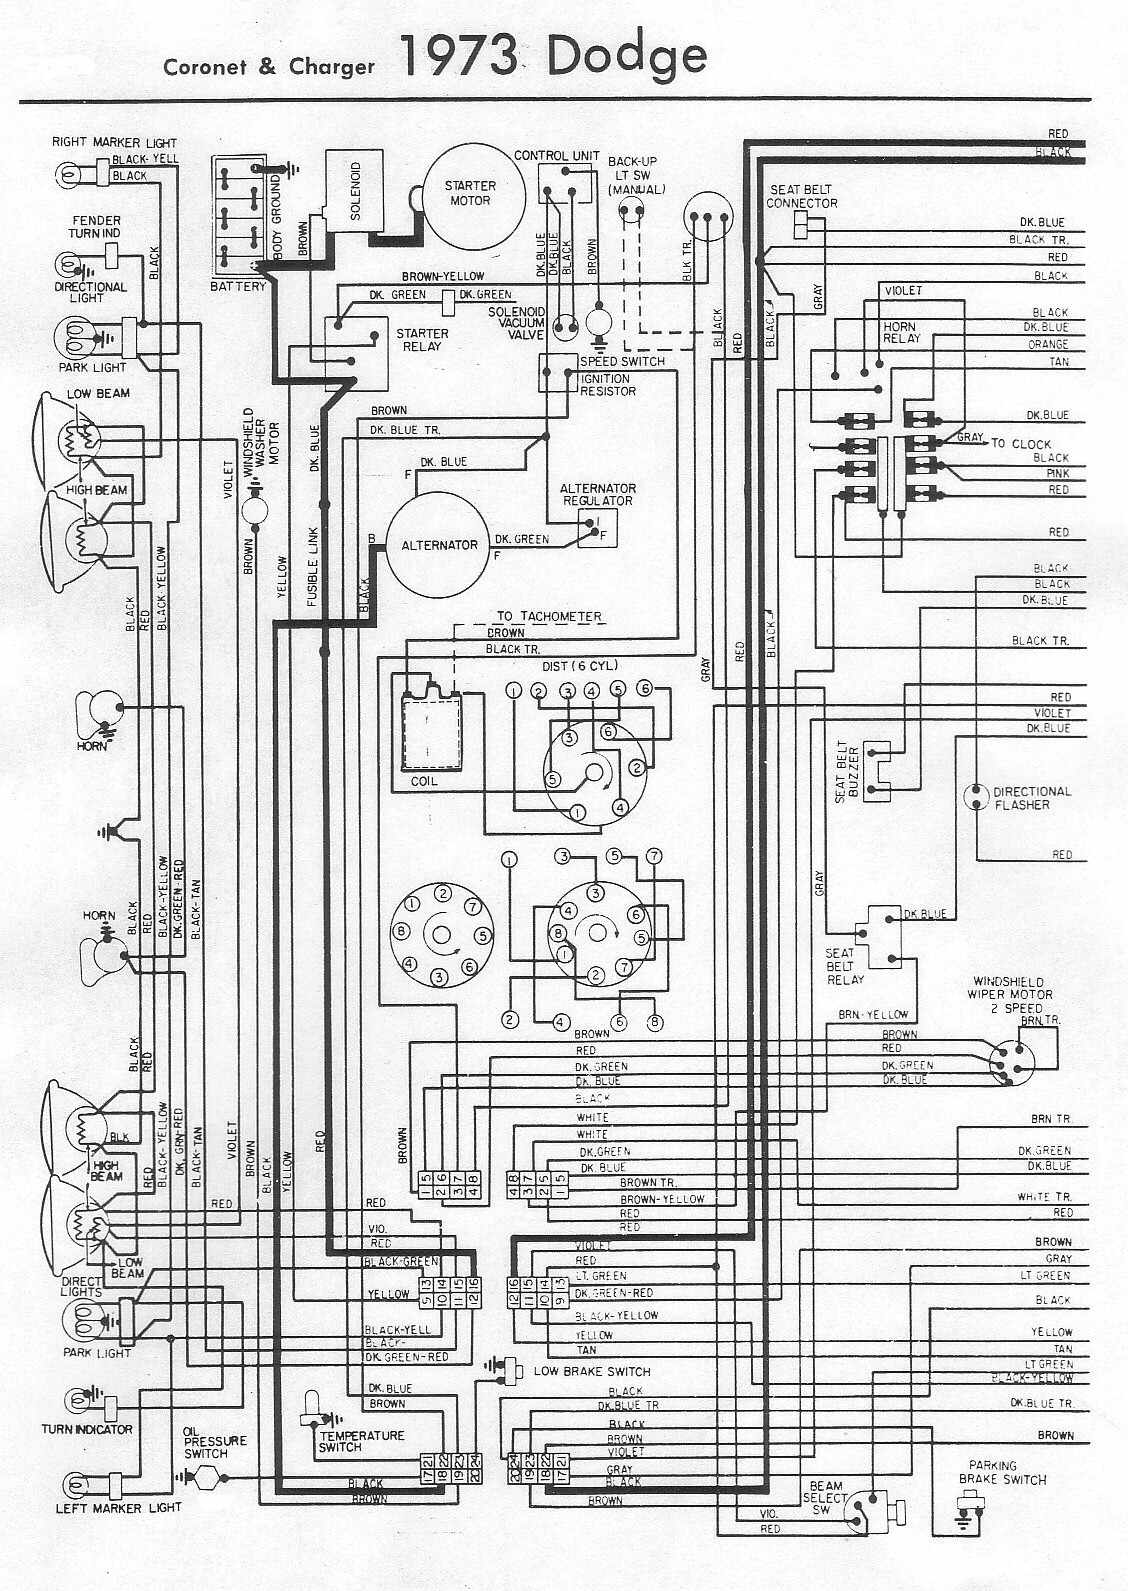 Dodge Car Manuals Wiring Diagrams Pdf Fault Codes 1961 Truck Harness Download